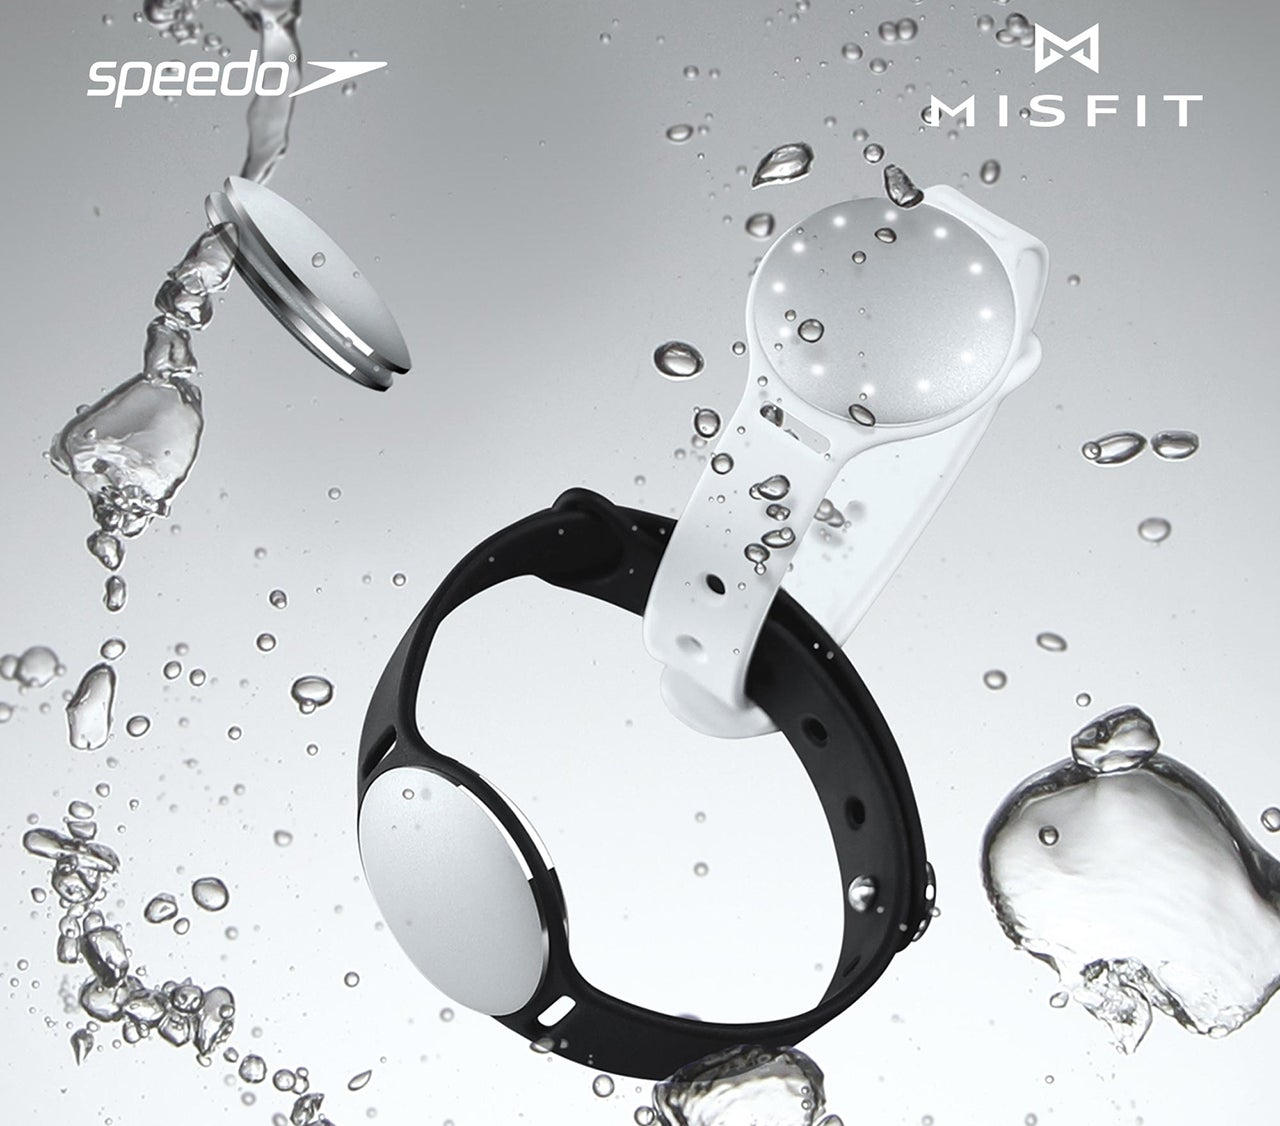 Speedo and Misfit Team Up For a Swimming-Focused Fitness Tracker